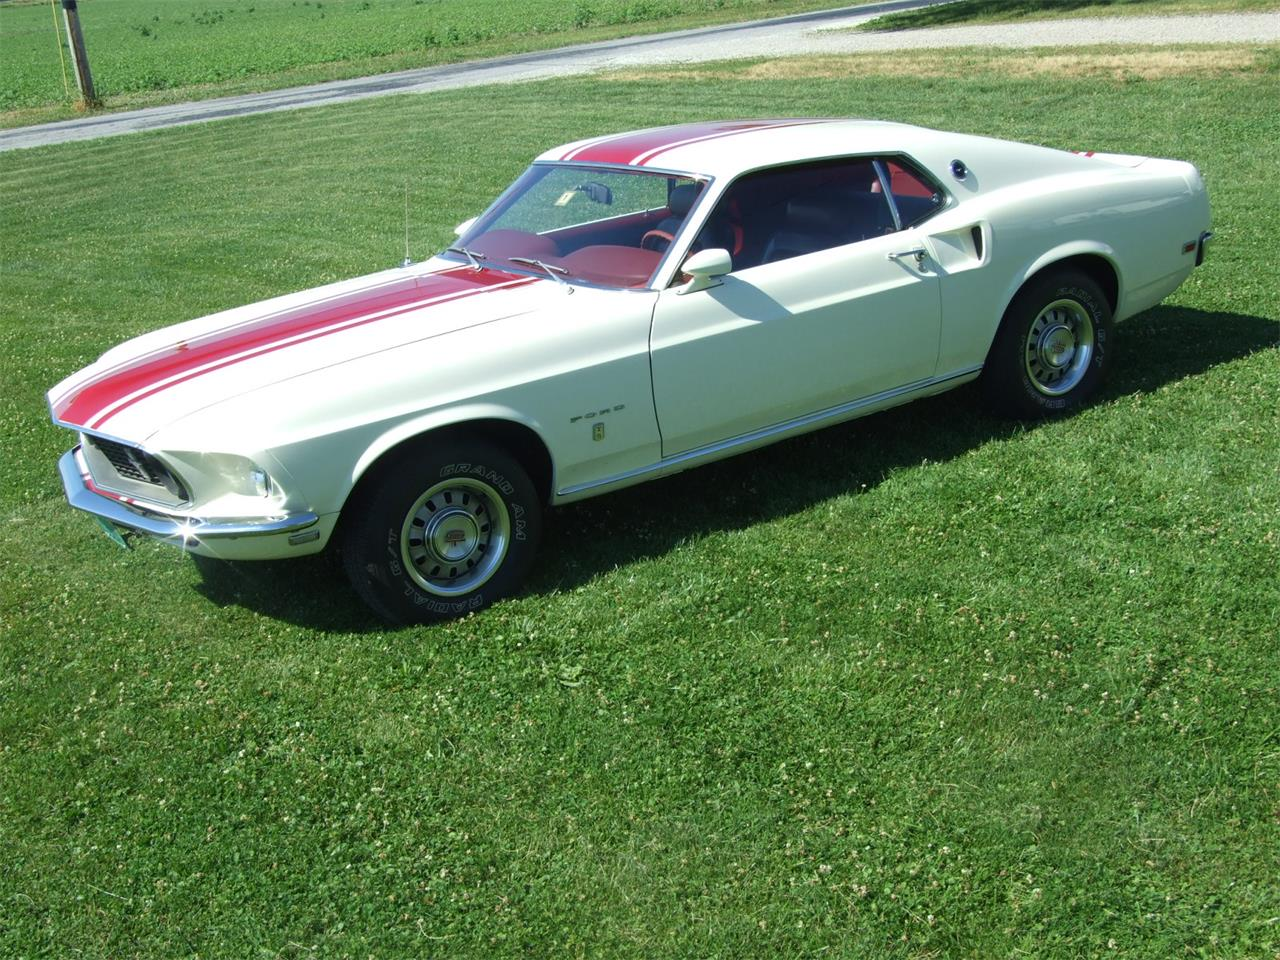 Large Picture of 1969 Ford Mustang Offered by Auto Connection, Inc. - JKJU